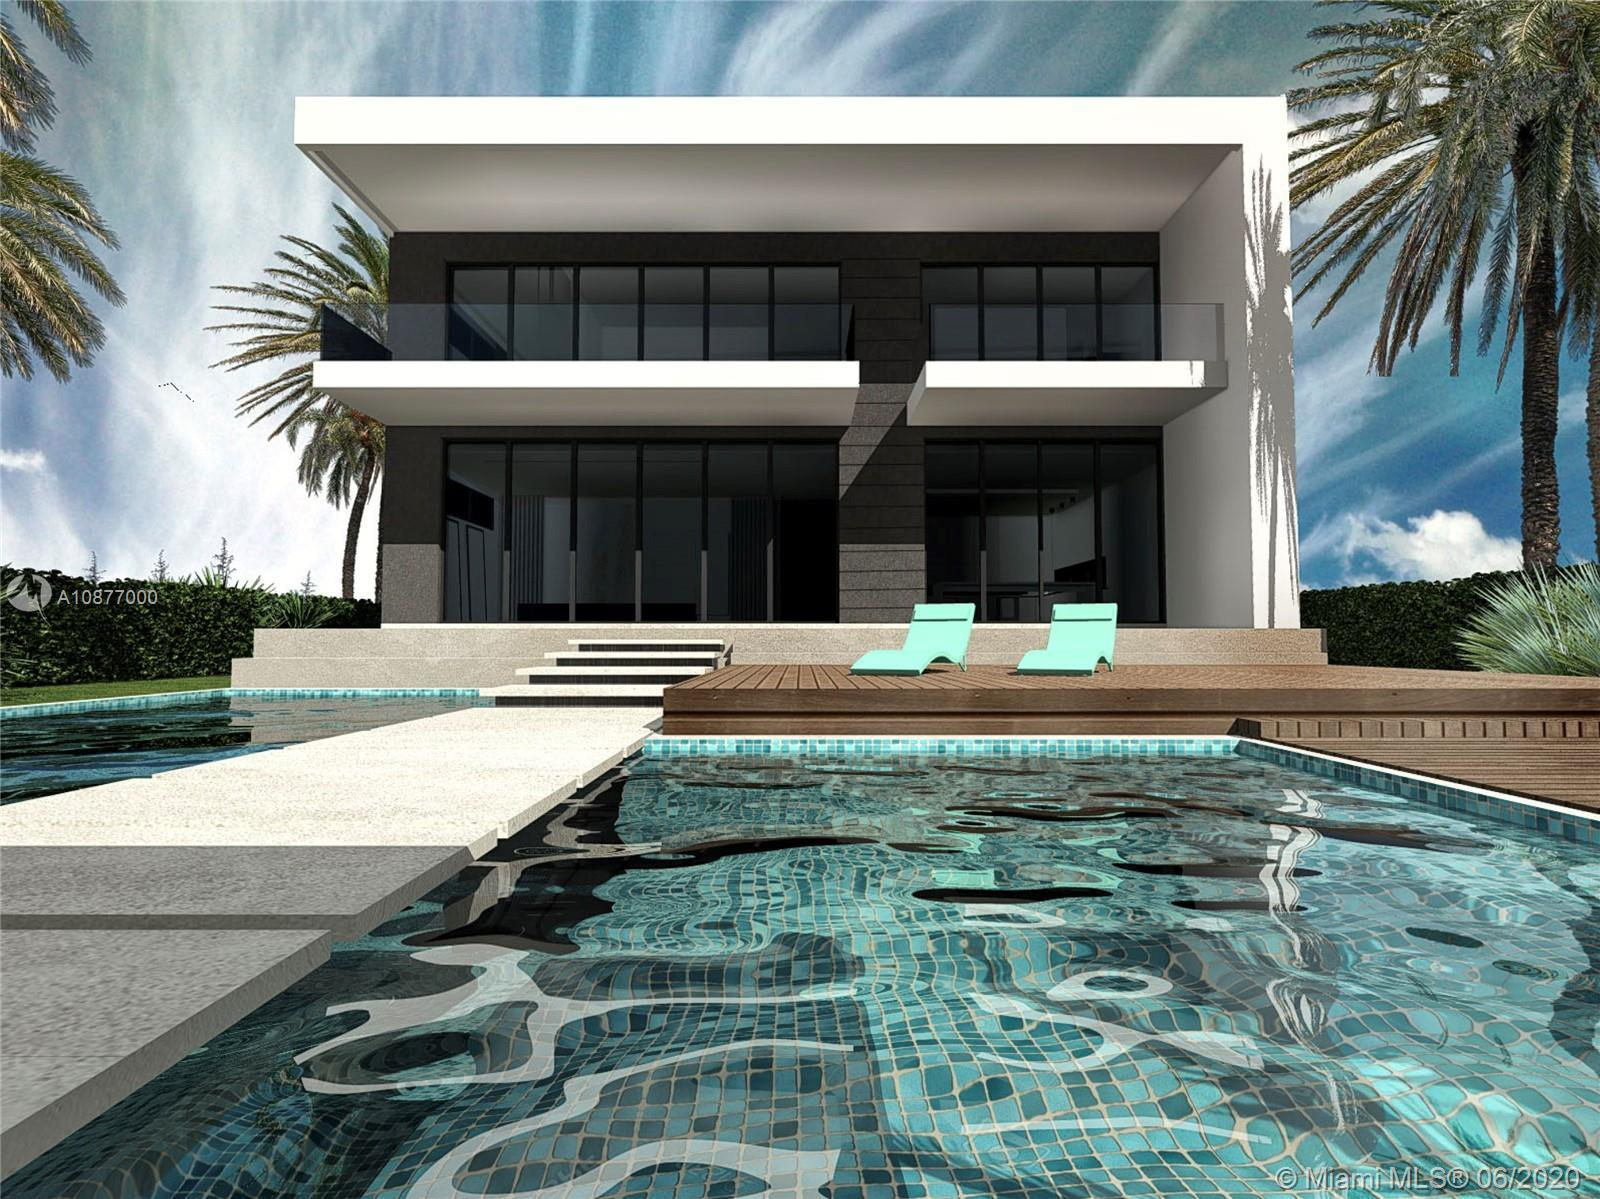 Architecturally stunning luxury home under construction available Fall 2020! Perfectly situated on a